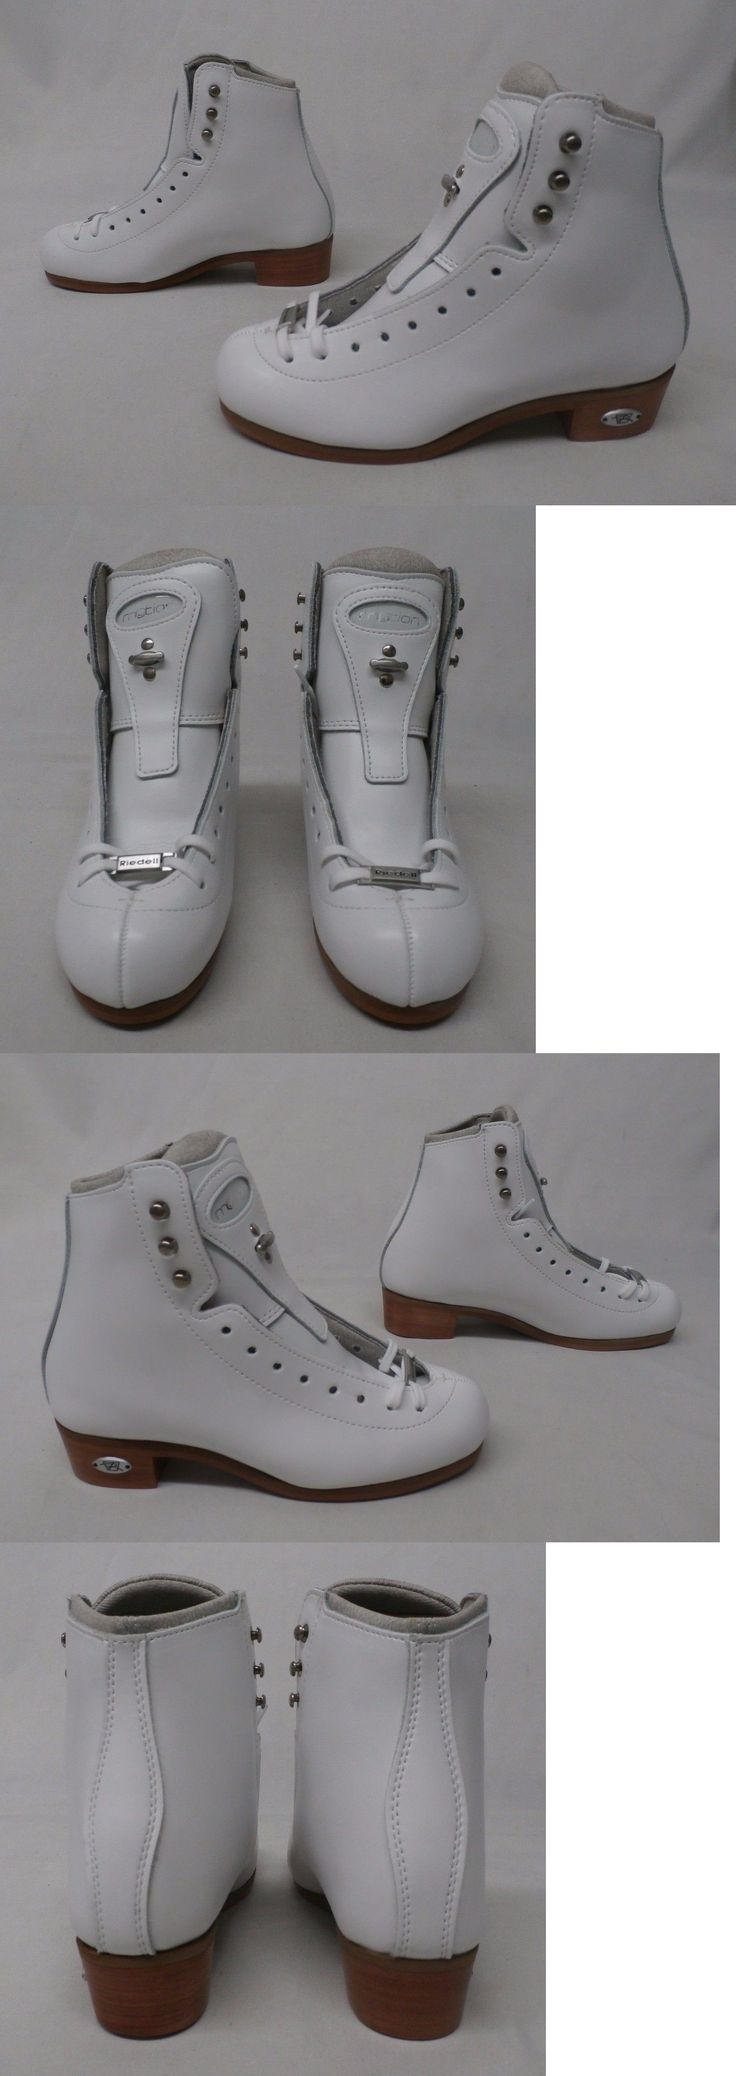 Youth 26344: Riedell 25 Motion Figure Ice Skates White Mm1 Size 2.5 M (Boots Only, No Blades) BUY IT NOW ONLY: $299.99